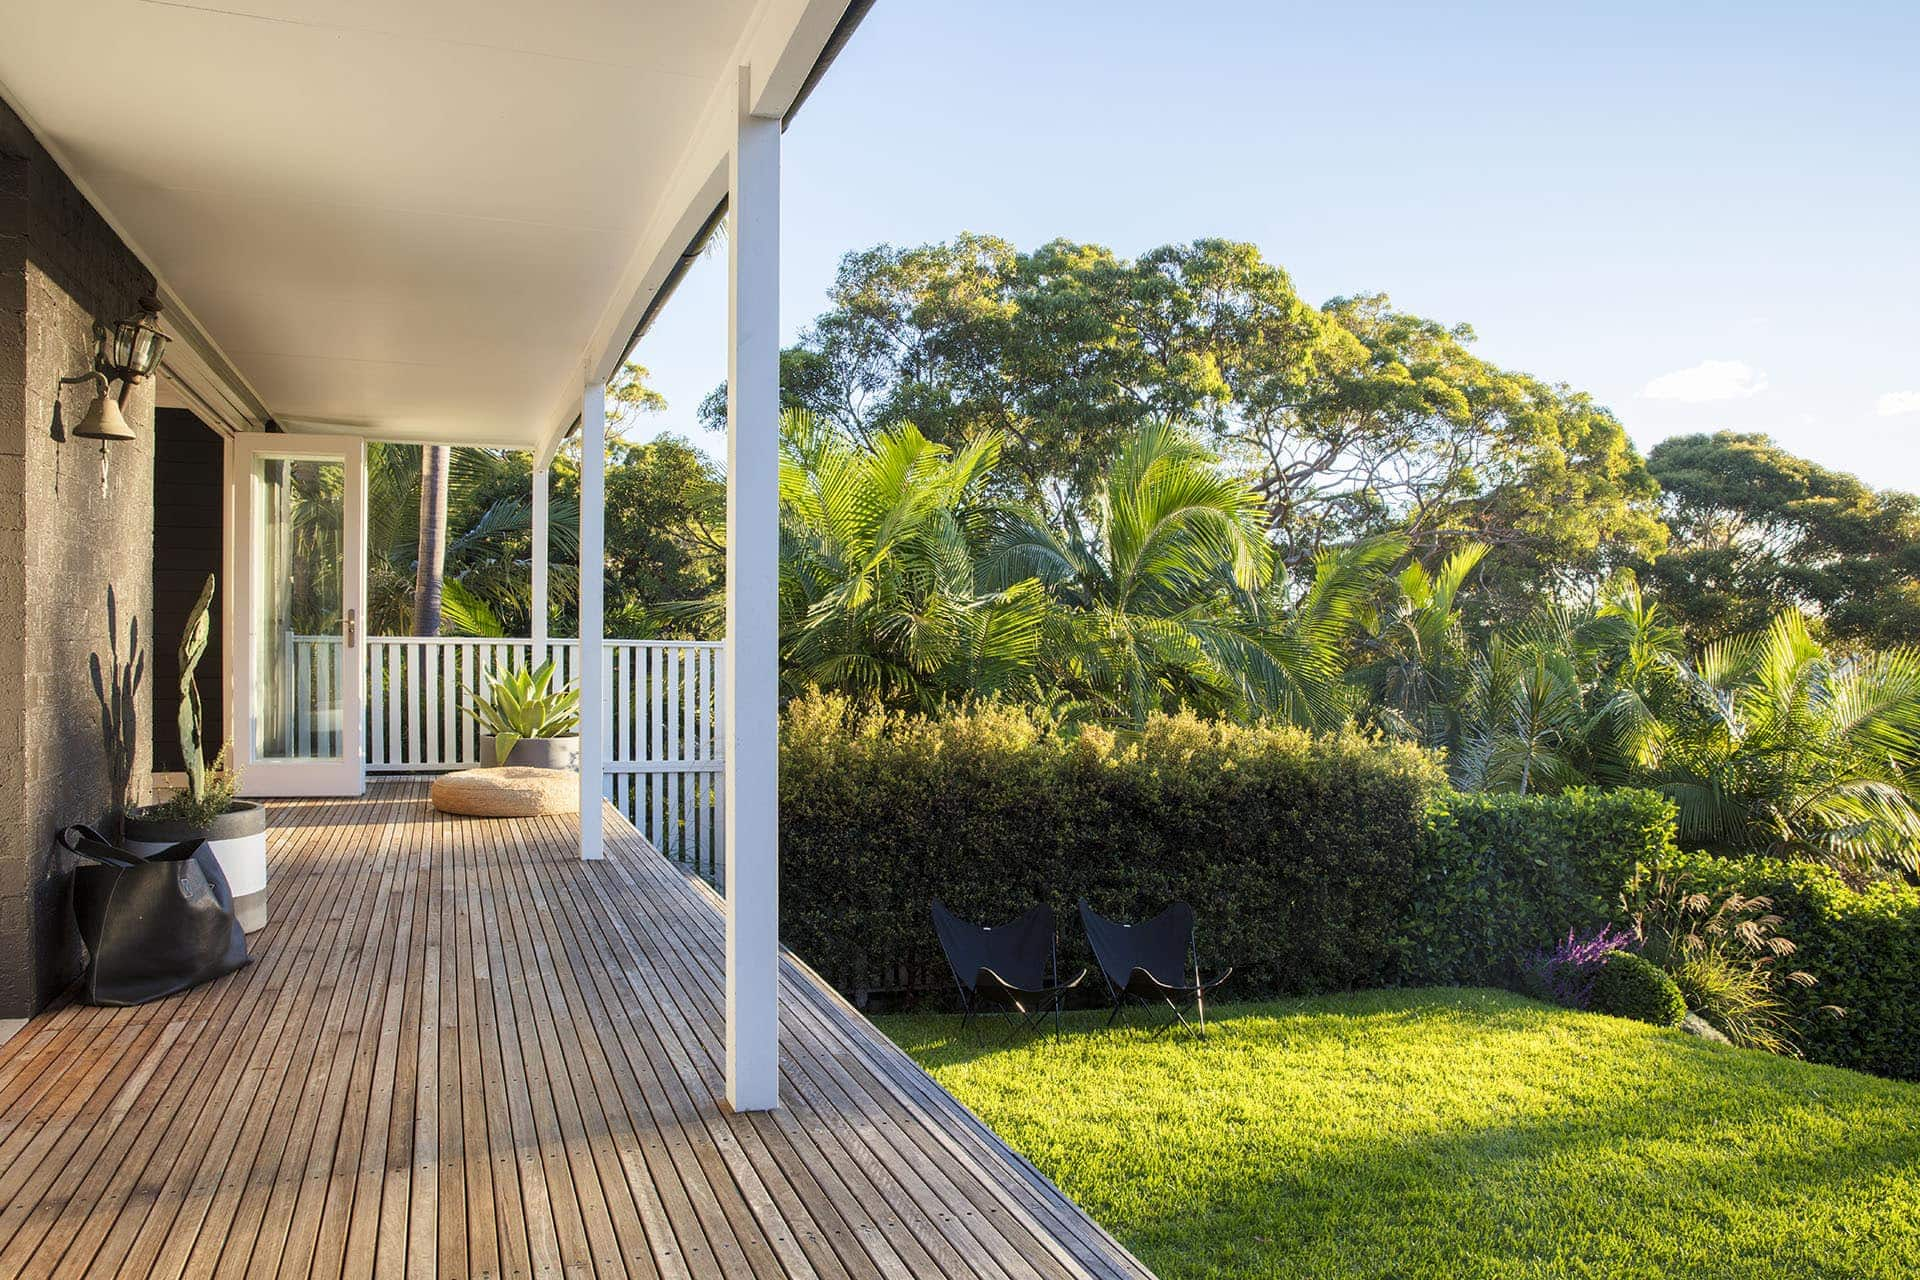 Timber decking front patio on raised home